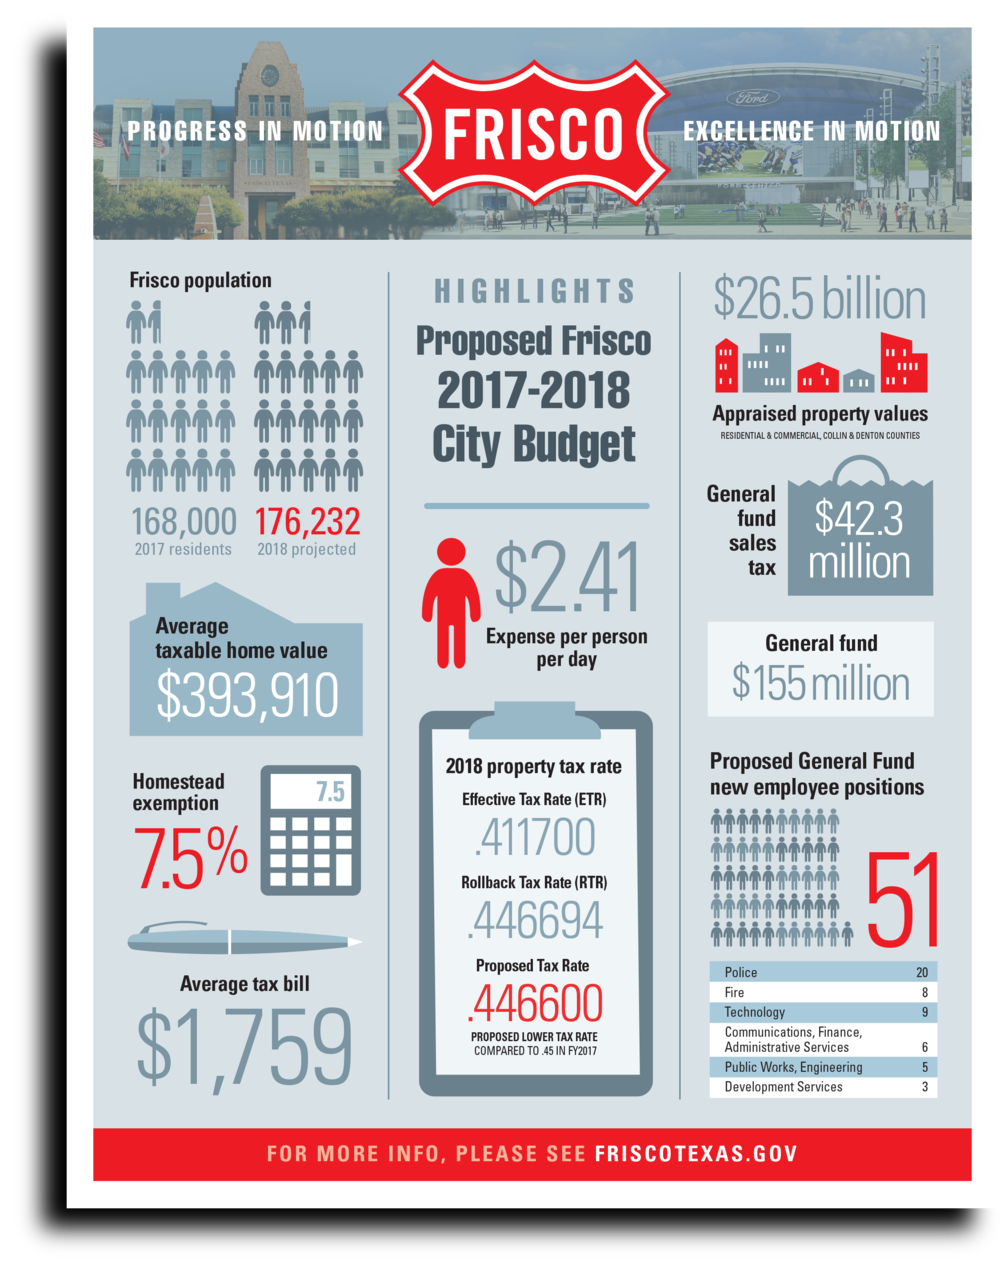 Frisco-BudgetGraphic-Flyer-85x11in-Aug2017.png